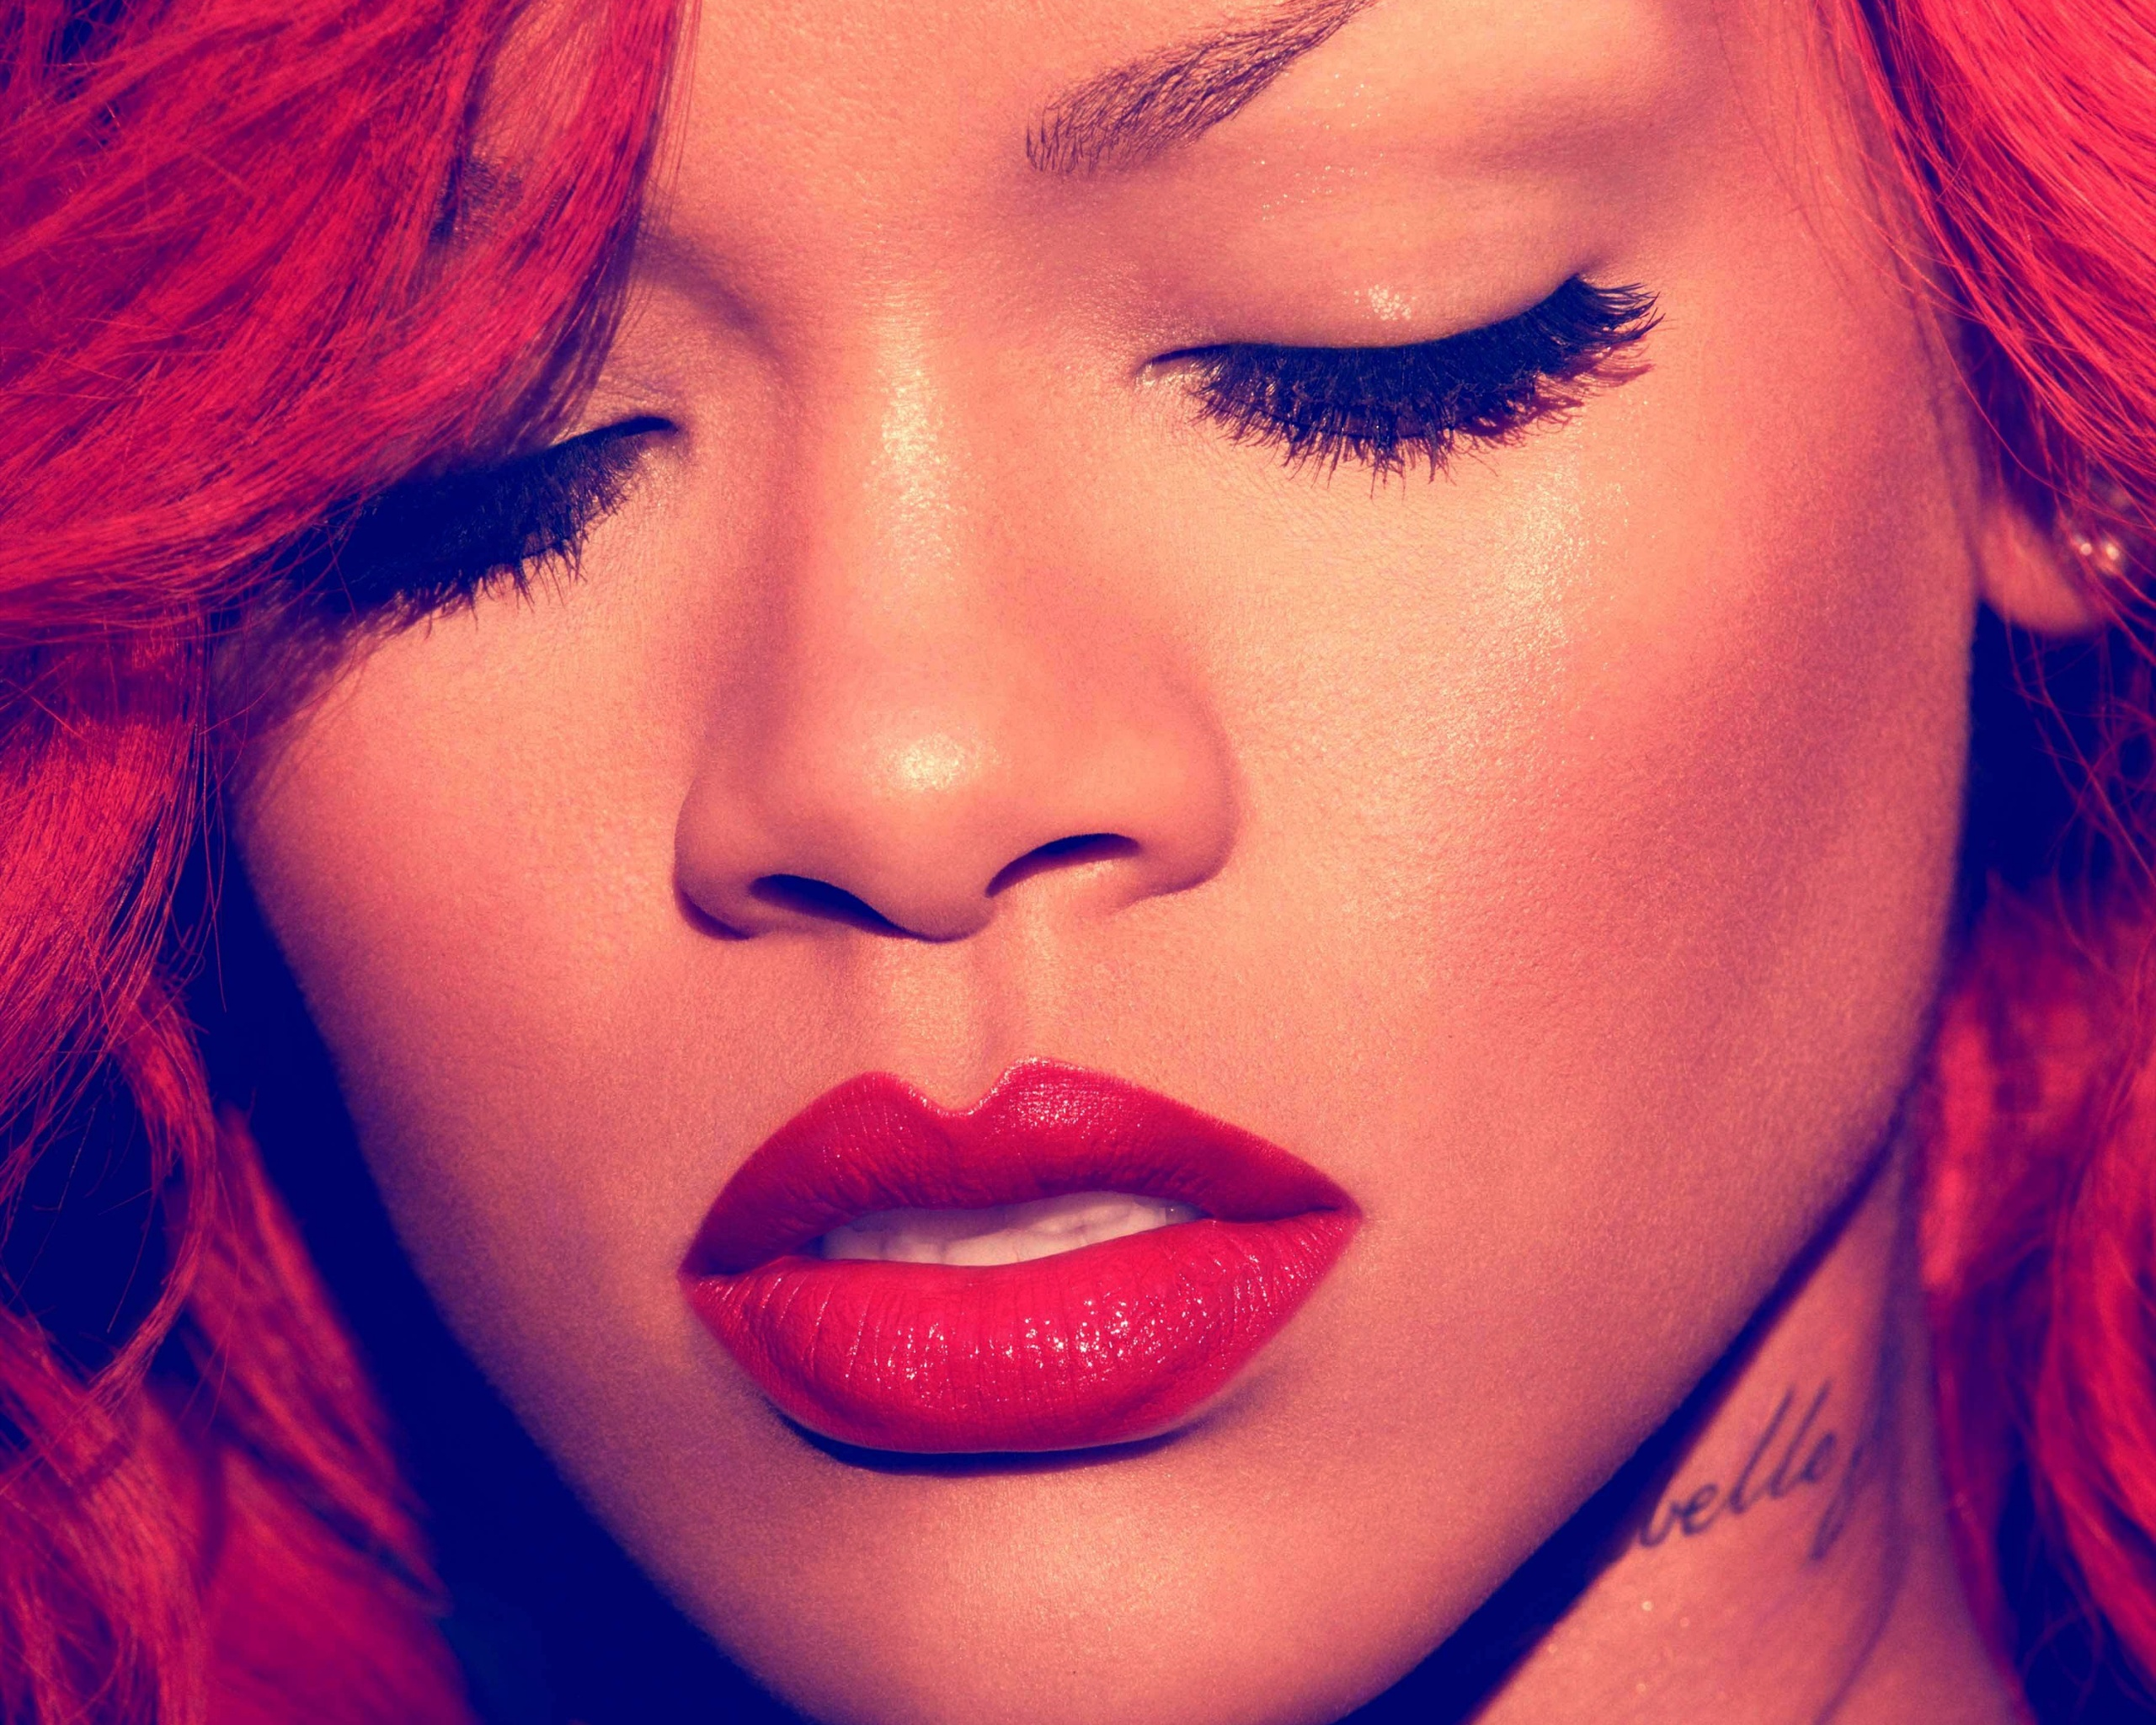 download rihanna hd wallpapers gallery